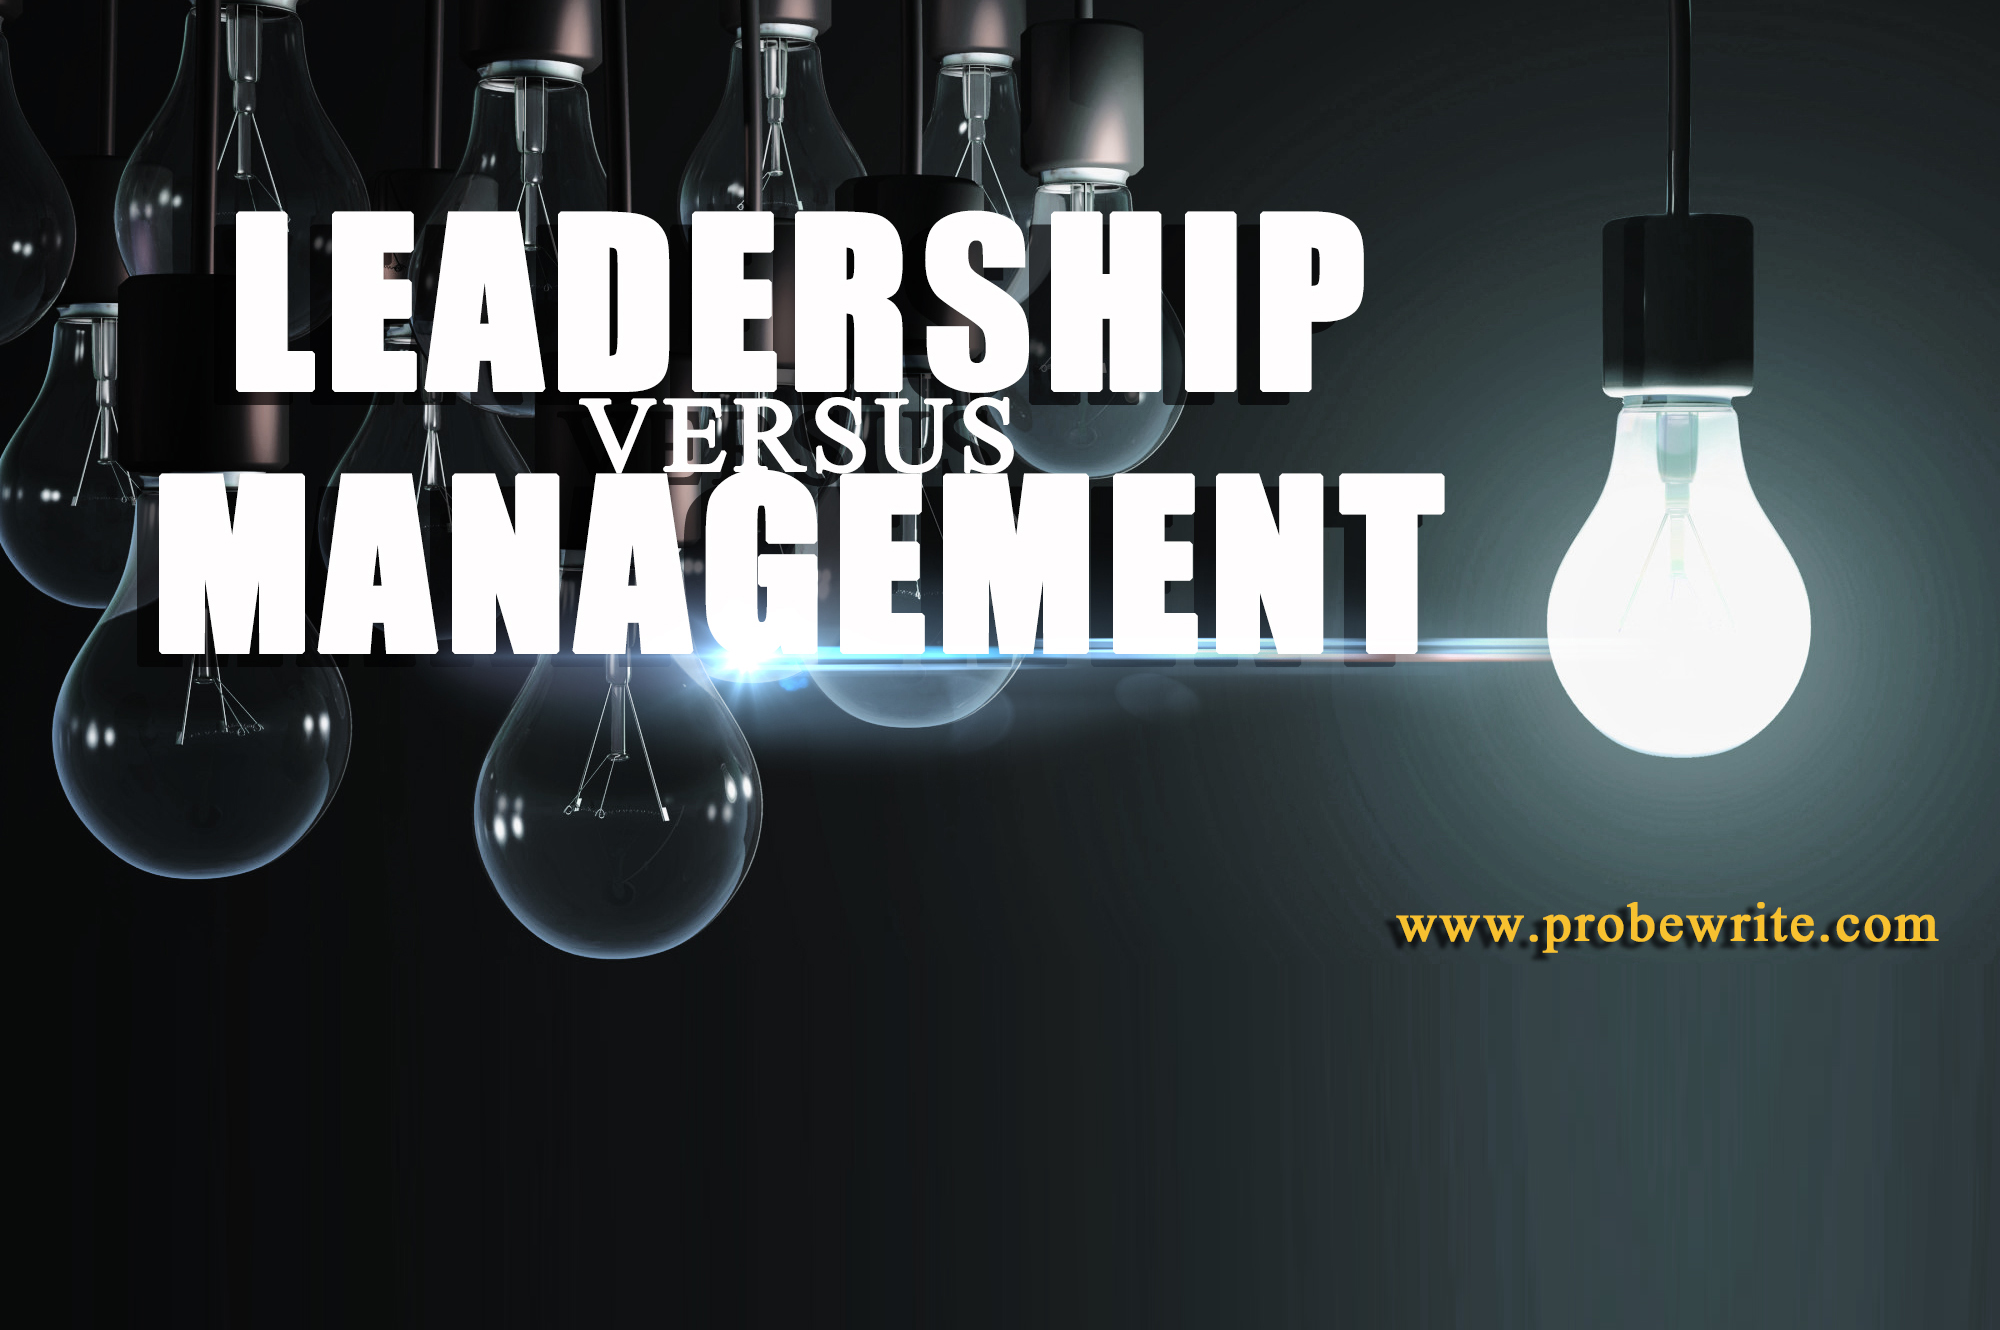 leadership_versus_management_probewrite-6d